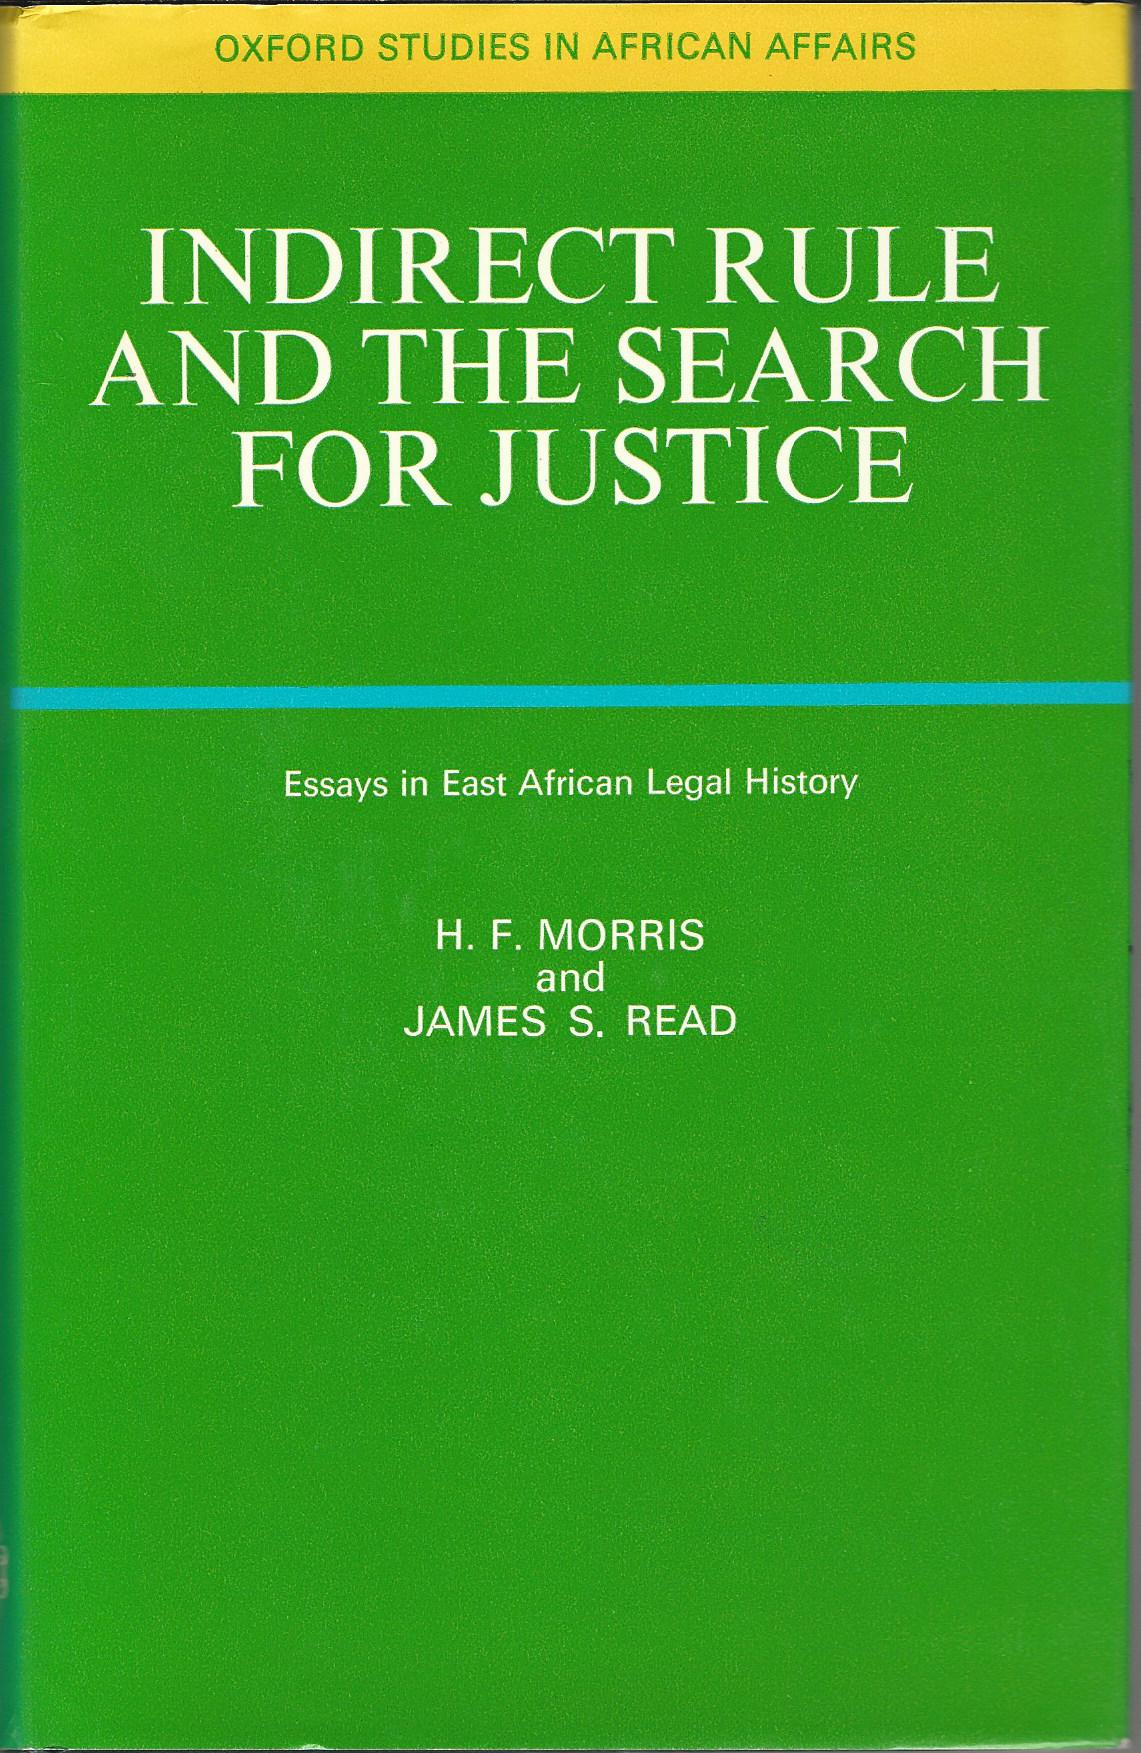 Image for Indirect Rule and the Search for Justice: Essays in East African Legal History